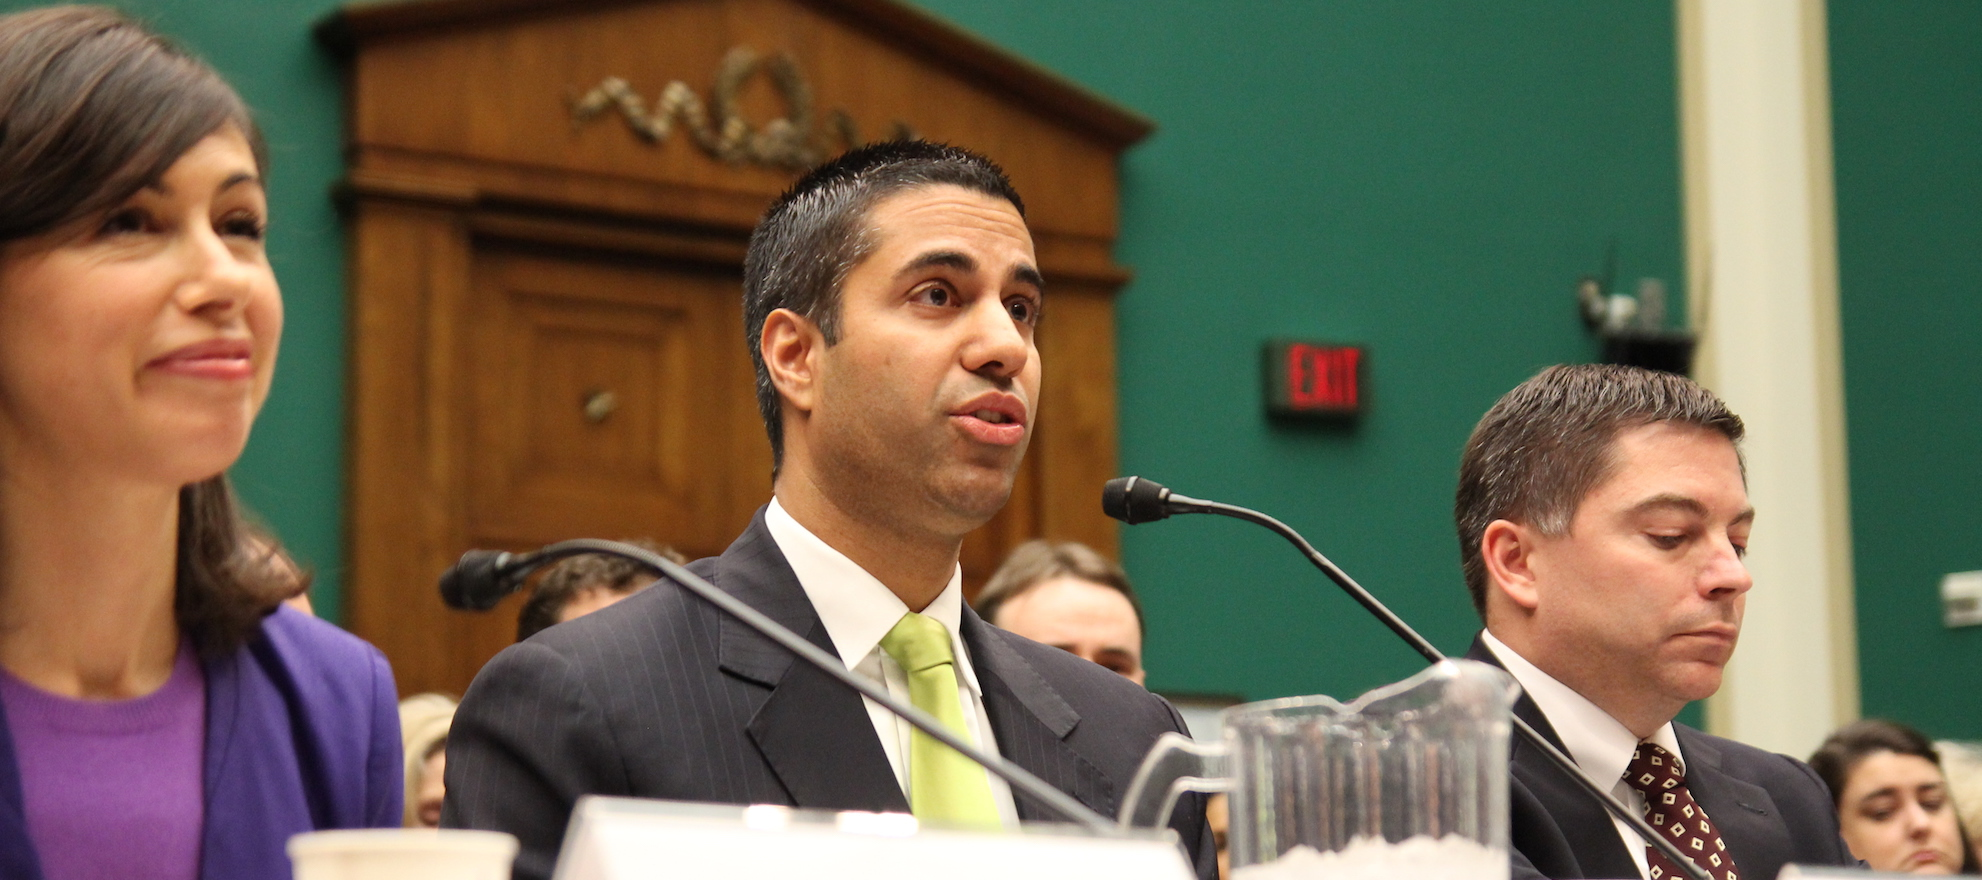 End of net neutrality could spell doom for real estate small businesses